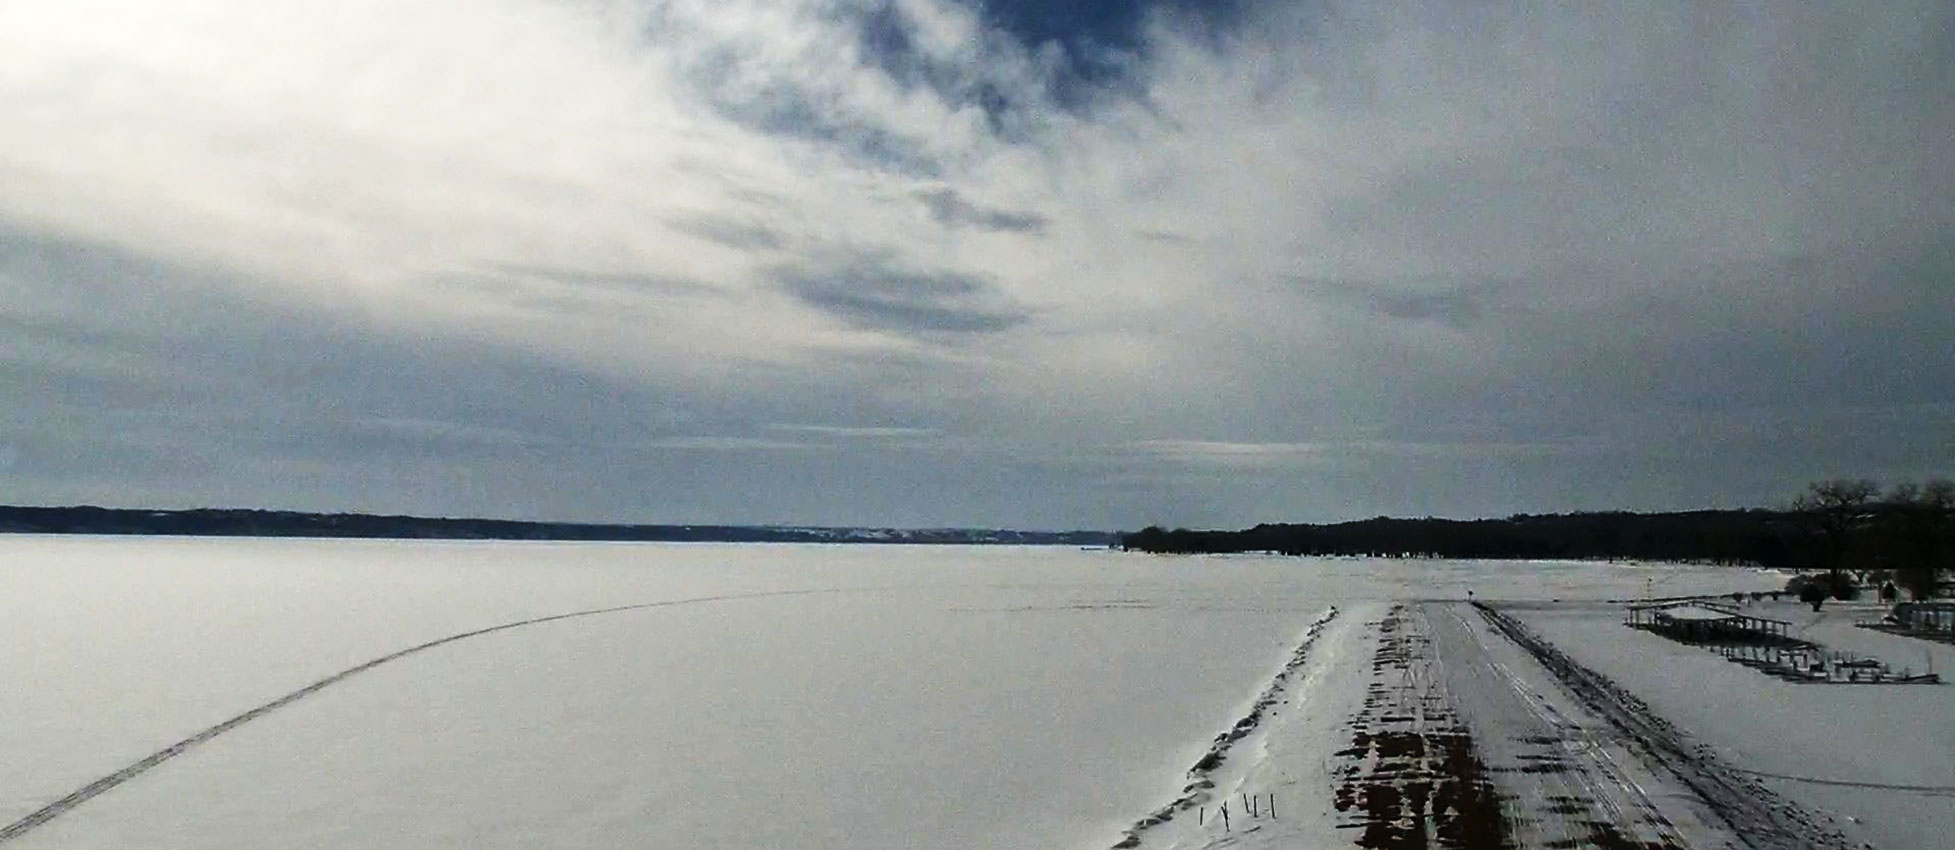 Yankton skycam weather